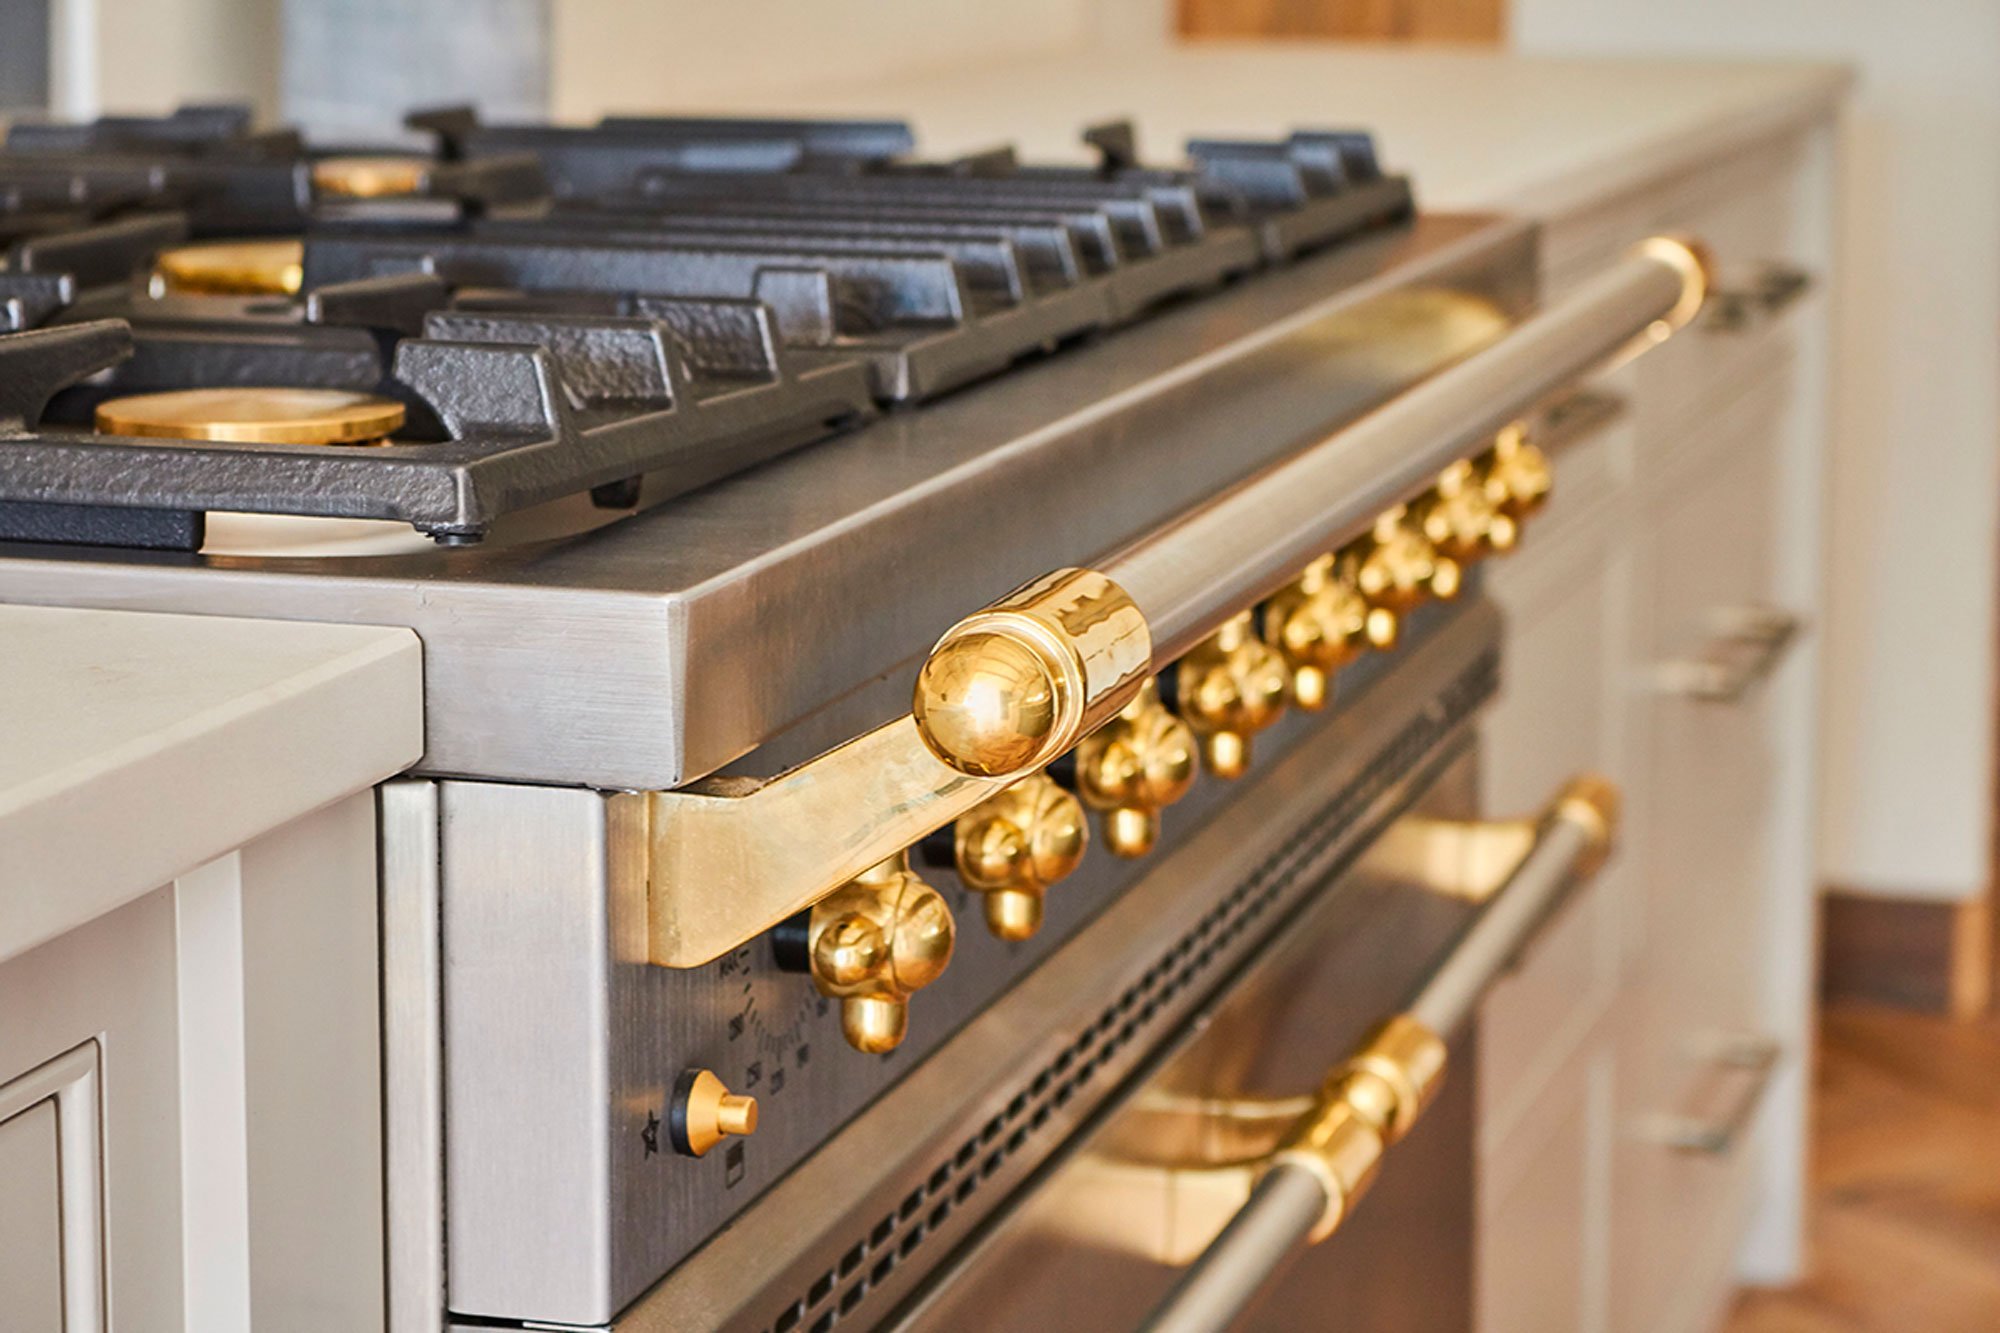 Stainless steel Lacanche gas range cooker with brass detail